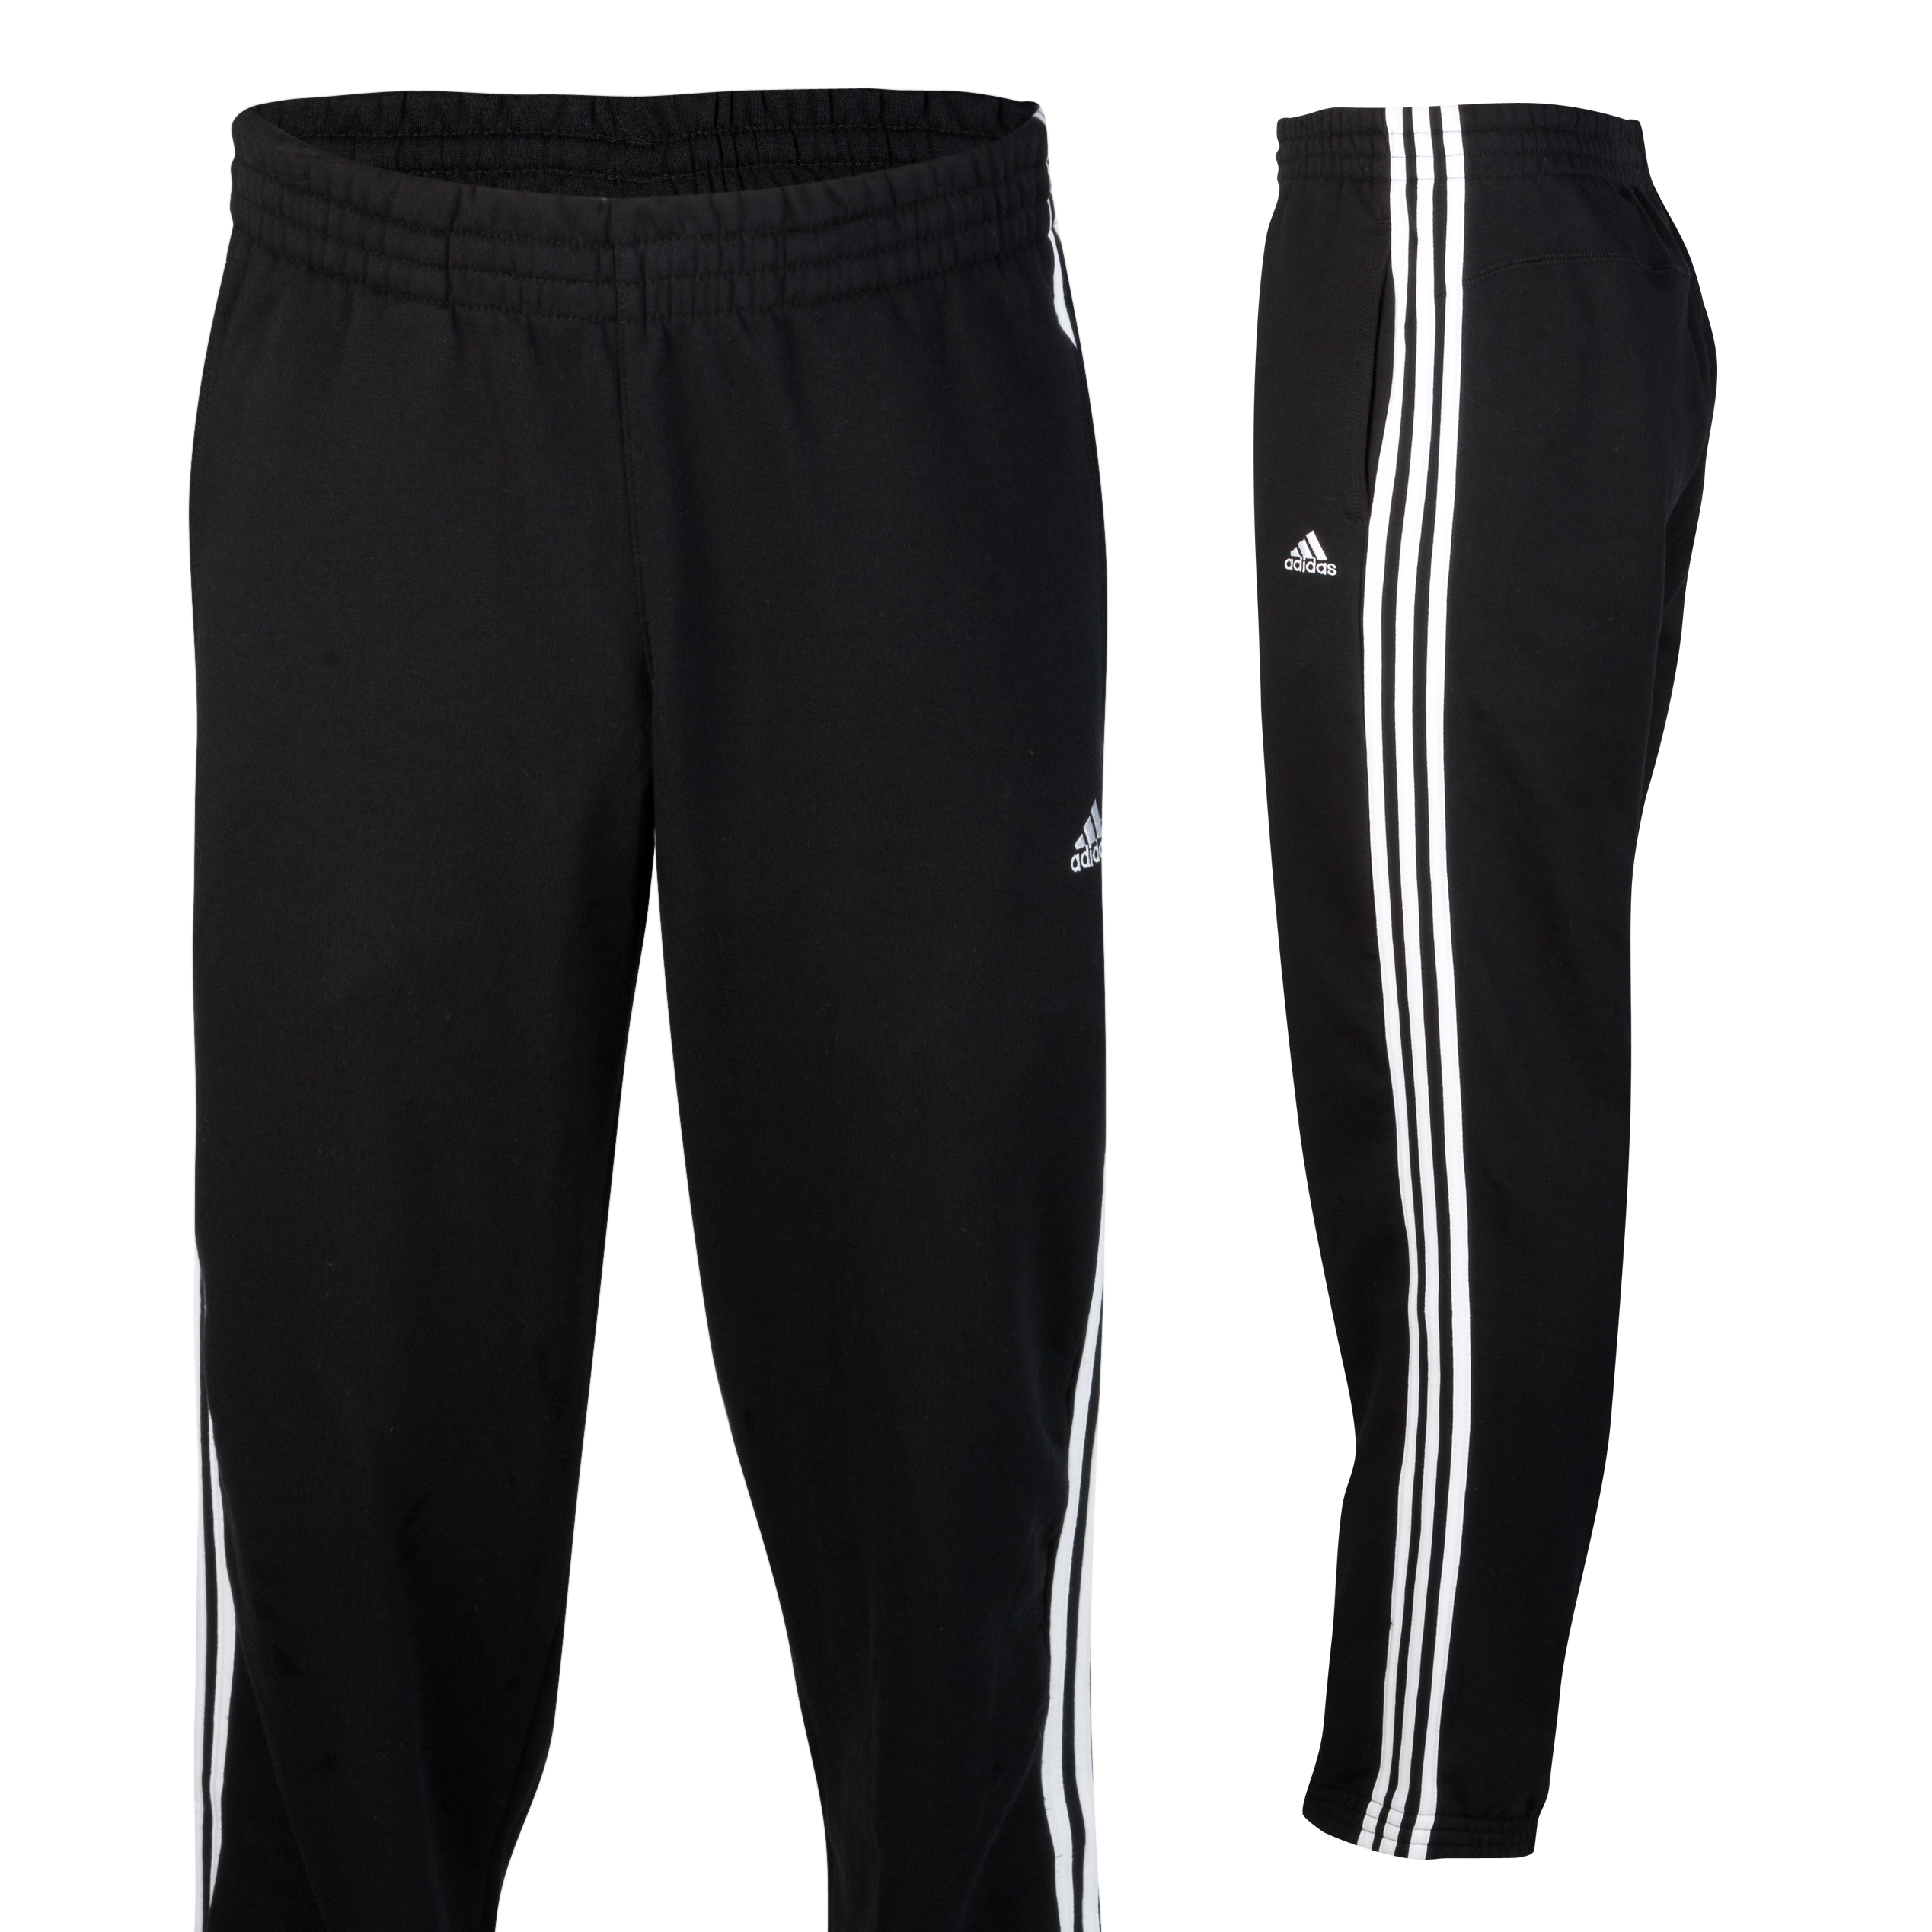 adidas Essentials 3 Stripe Sweat Pant - Black/White